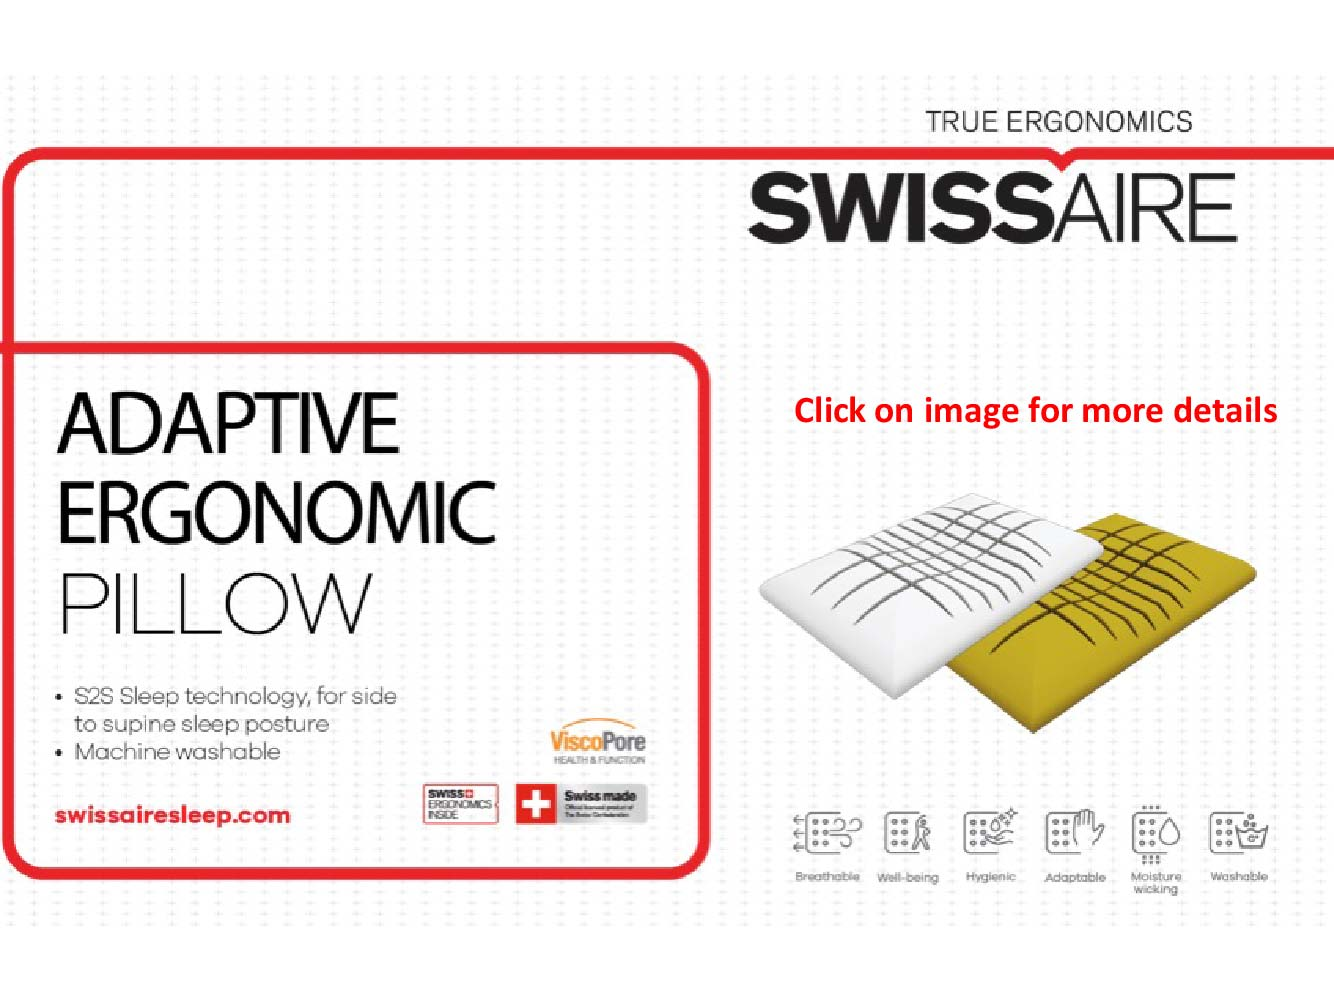 Swissaire True Ergonomics Adaptive Ergonomic Pillow